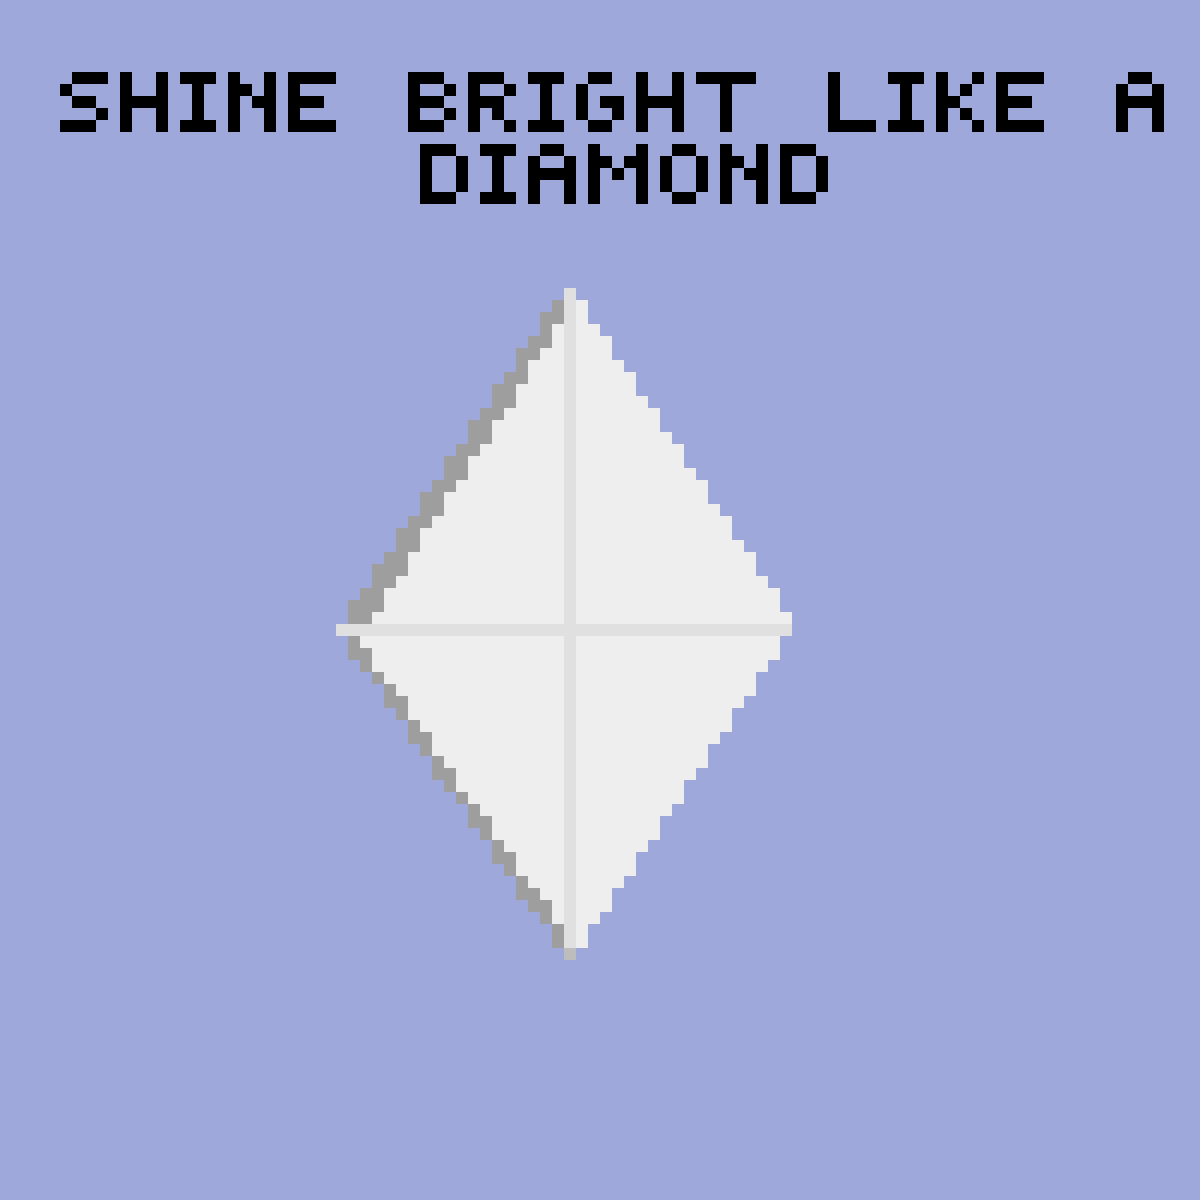 SHINE BRIGHT LIKE A DIAMOND by Snorlax3426